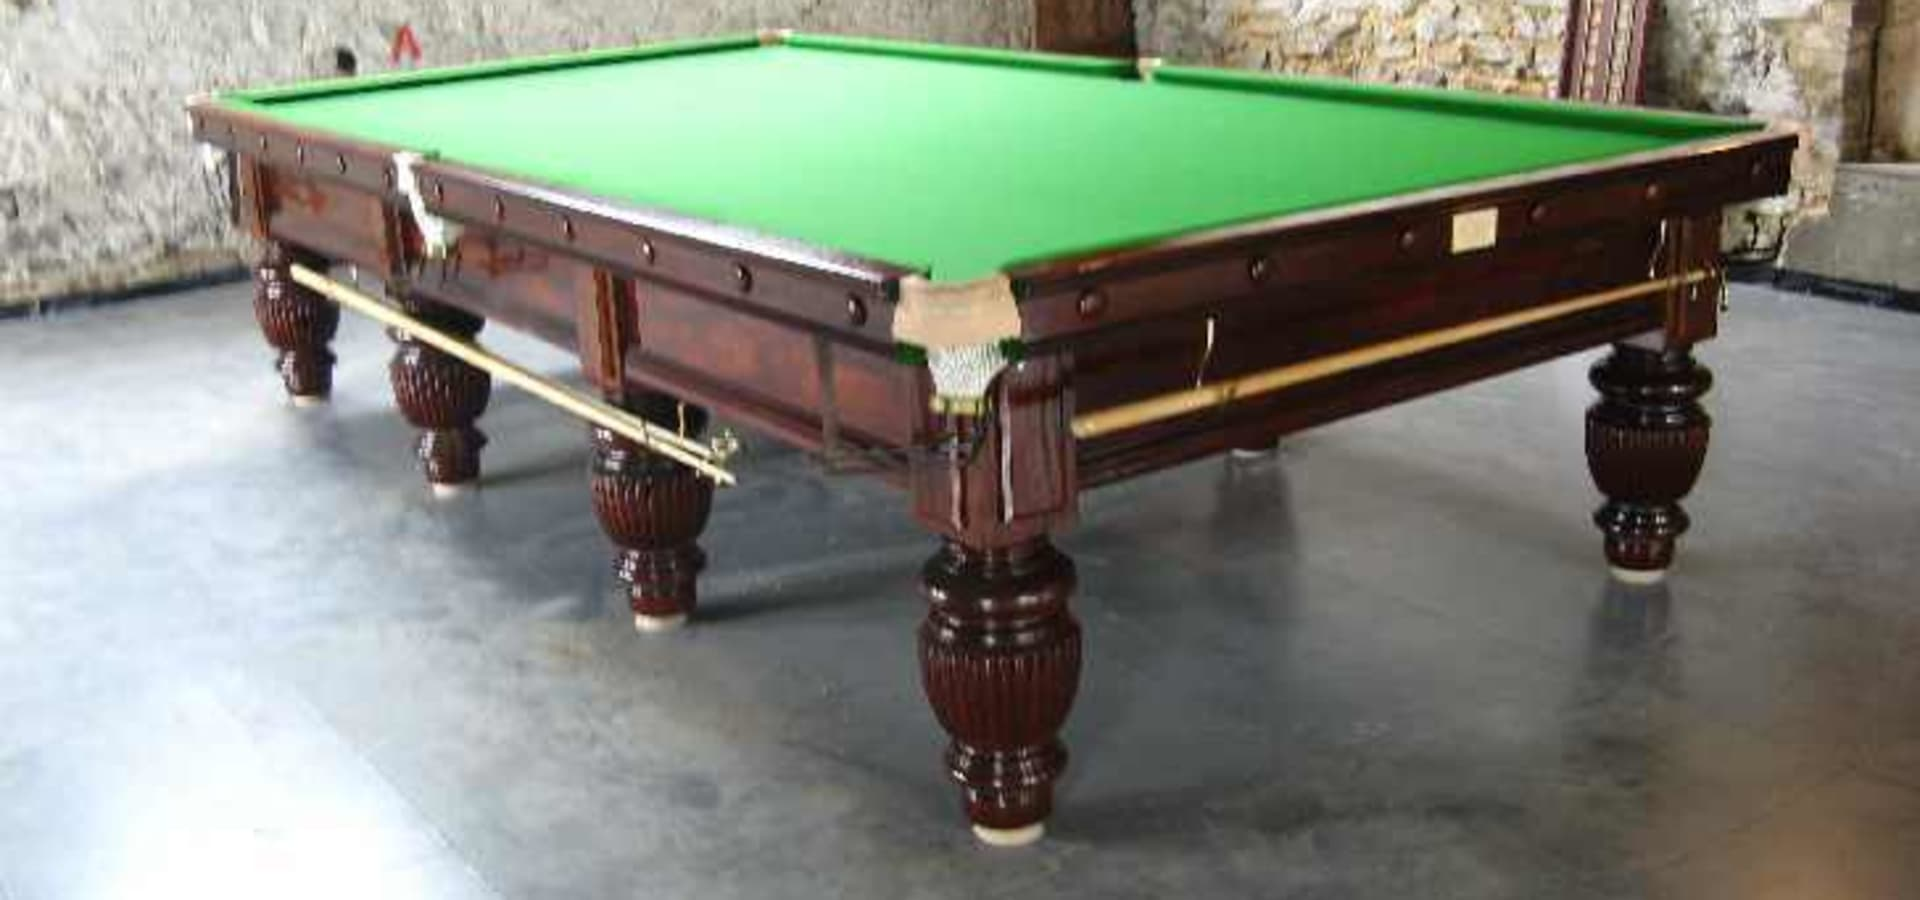 John Bennett (Billiards) Ltd